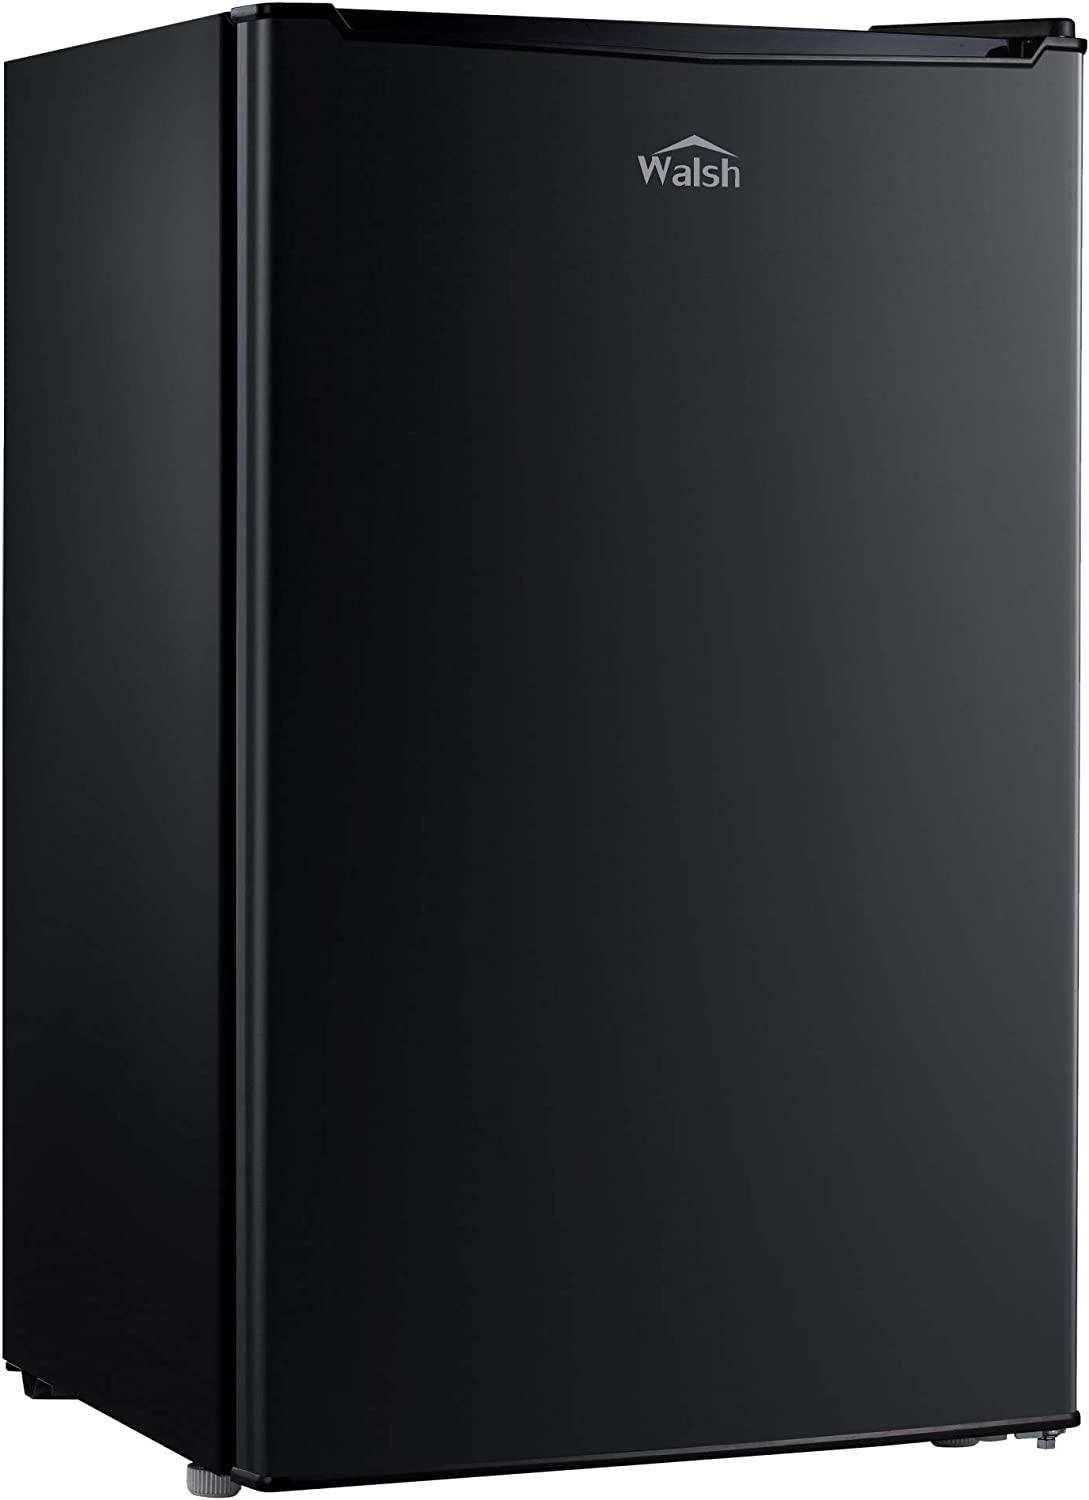 WALSH WSR35BK 3.5 cu ft Fridge Black